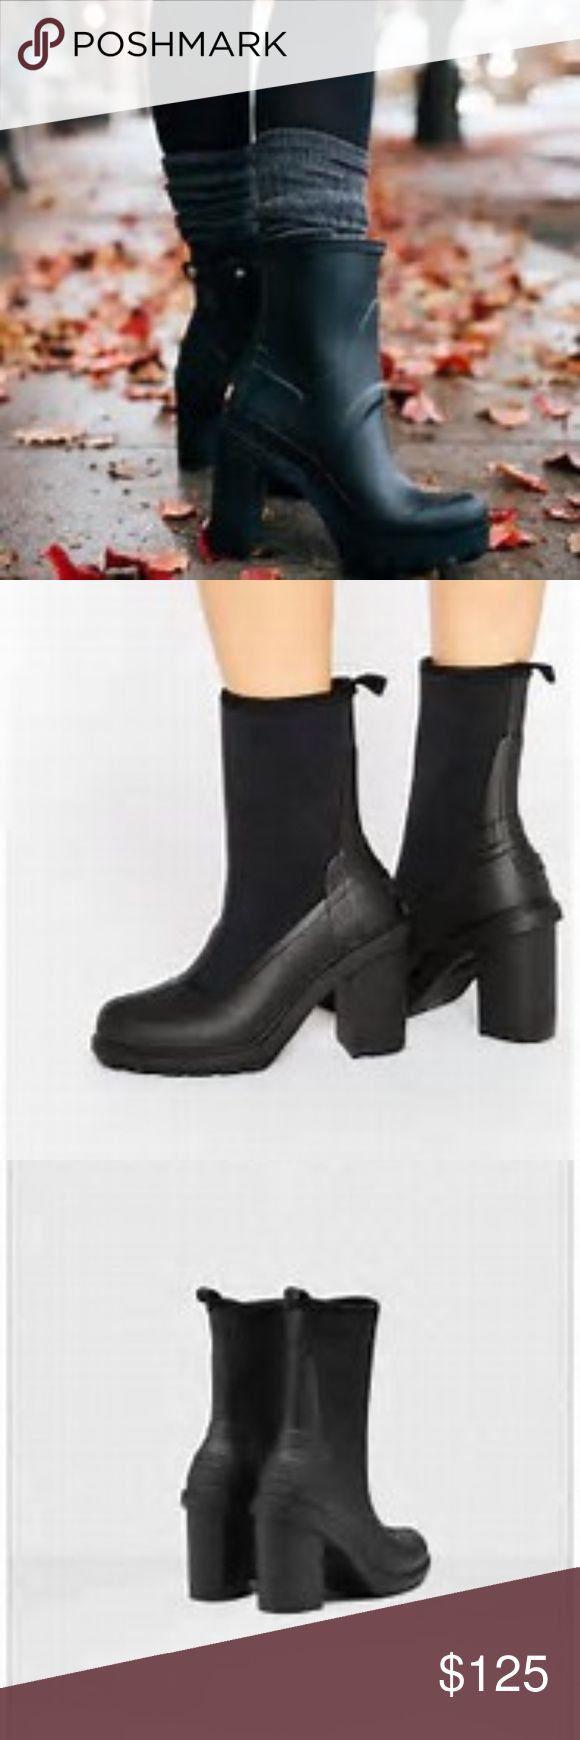 "Hunter Original High Heel Sock Rain Boot Sizing: True to size. Whole sizes only; for 1/2 sizes, order next size down.  - Round toe - Back pull-tab - Pull-on - Removable insole - Approx. 7.5"" shaft height, 7"" opening circumference - Approx. 4.5"" heel Hunter Shoes Heeled Boots"